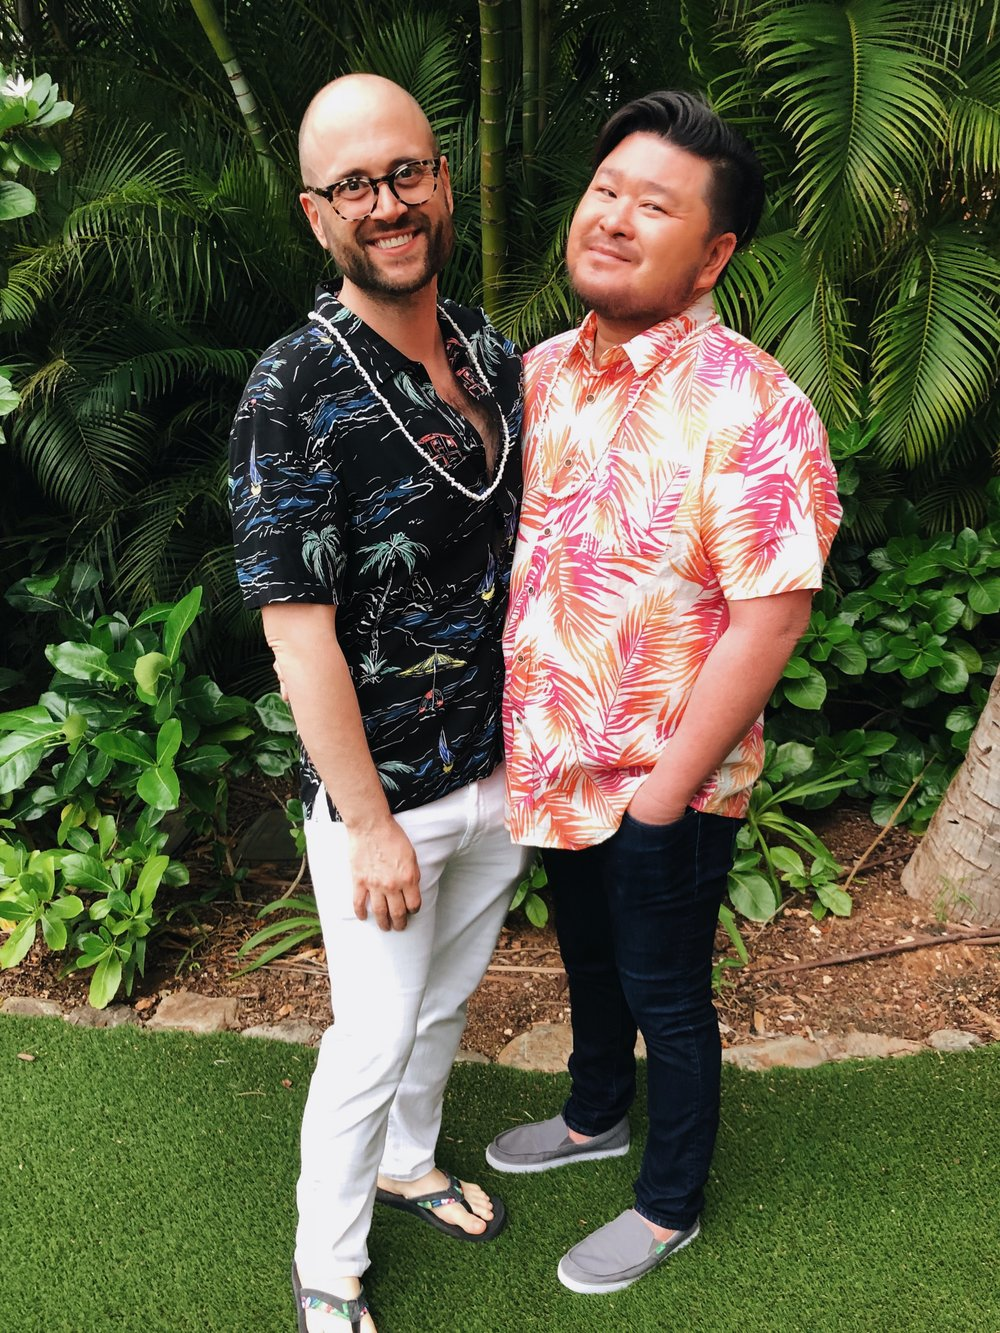 Chris and I lookin foine at the luau.